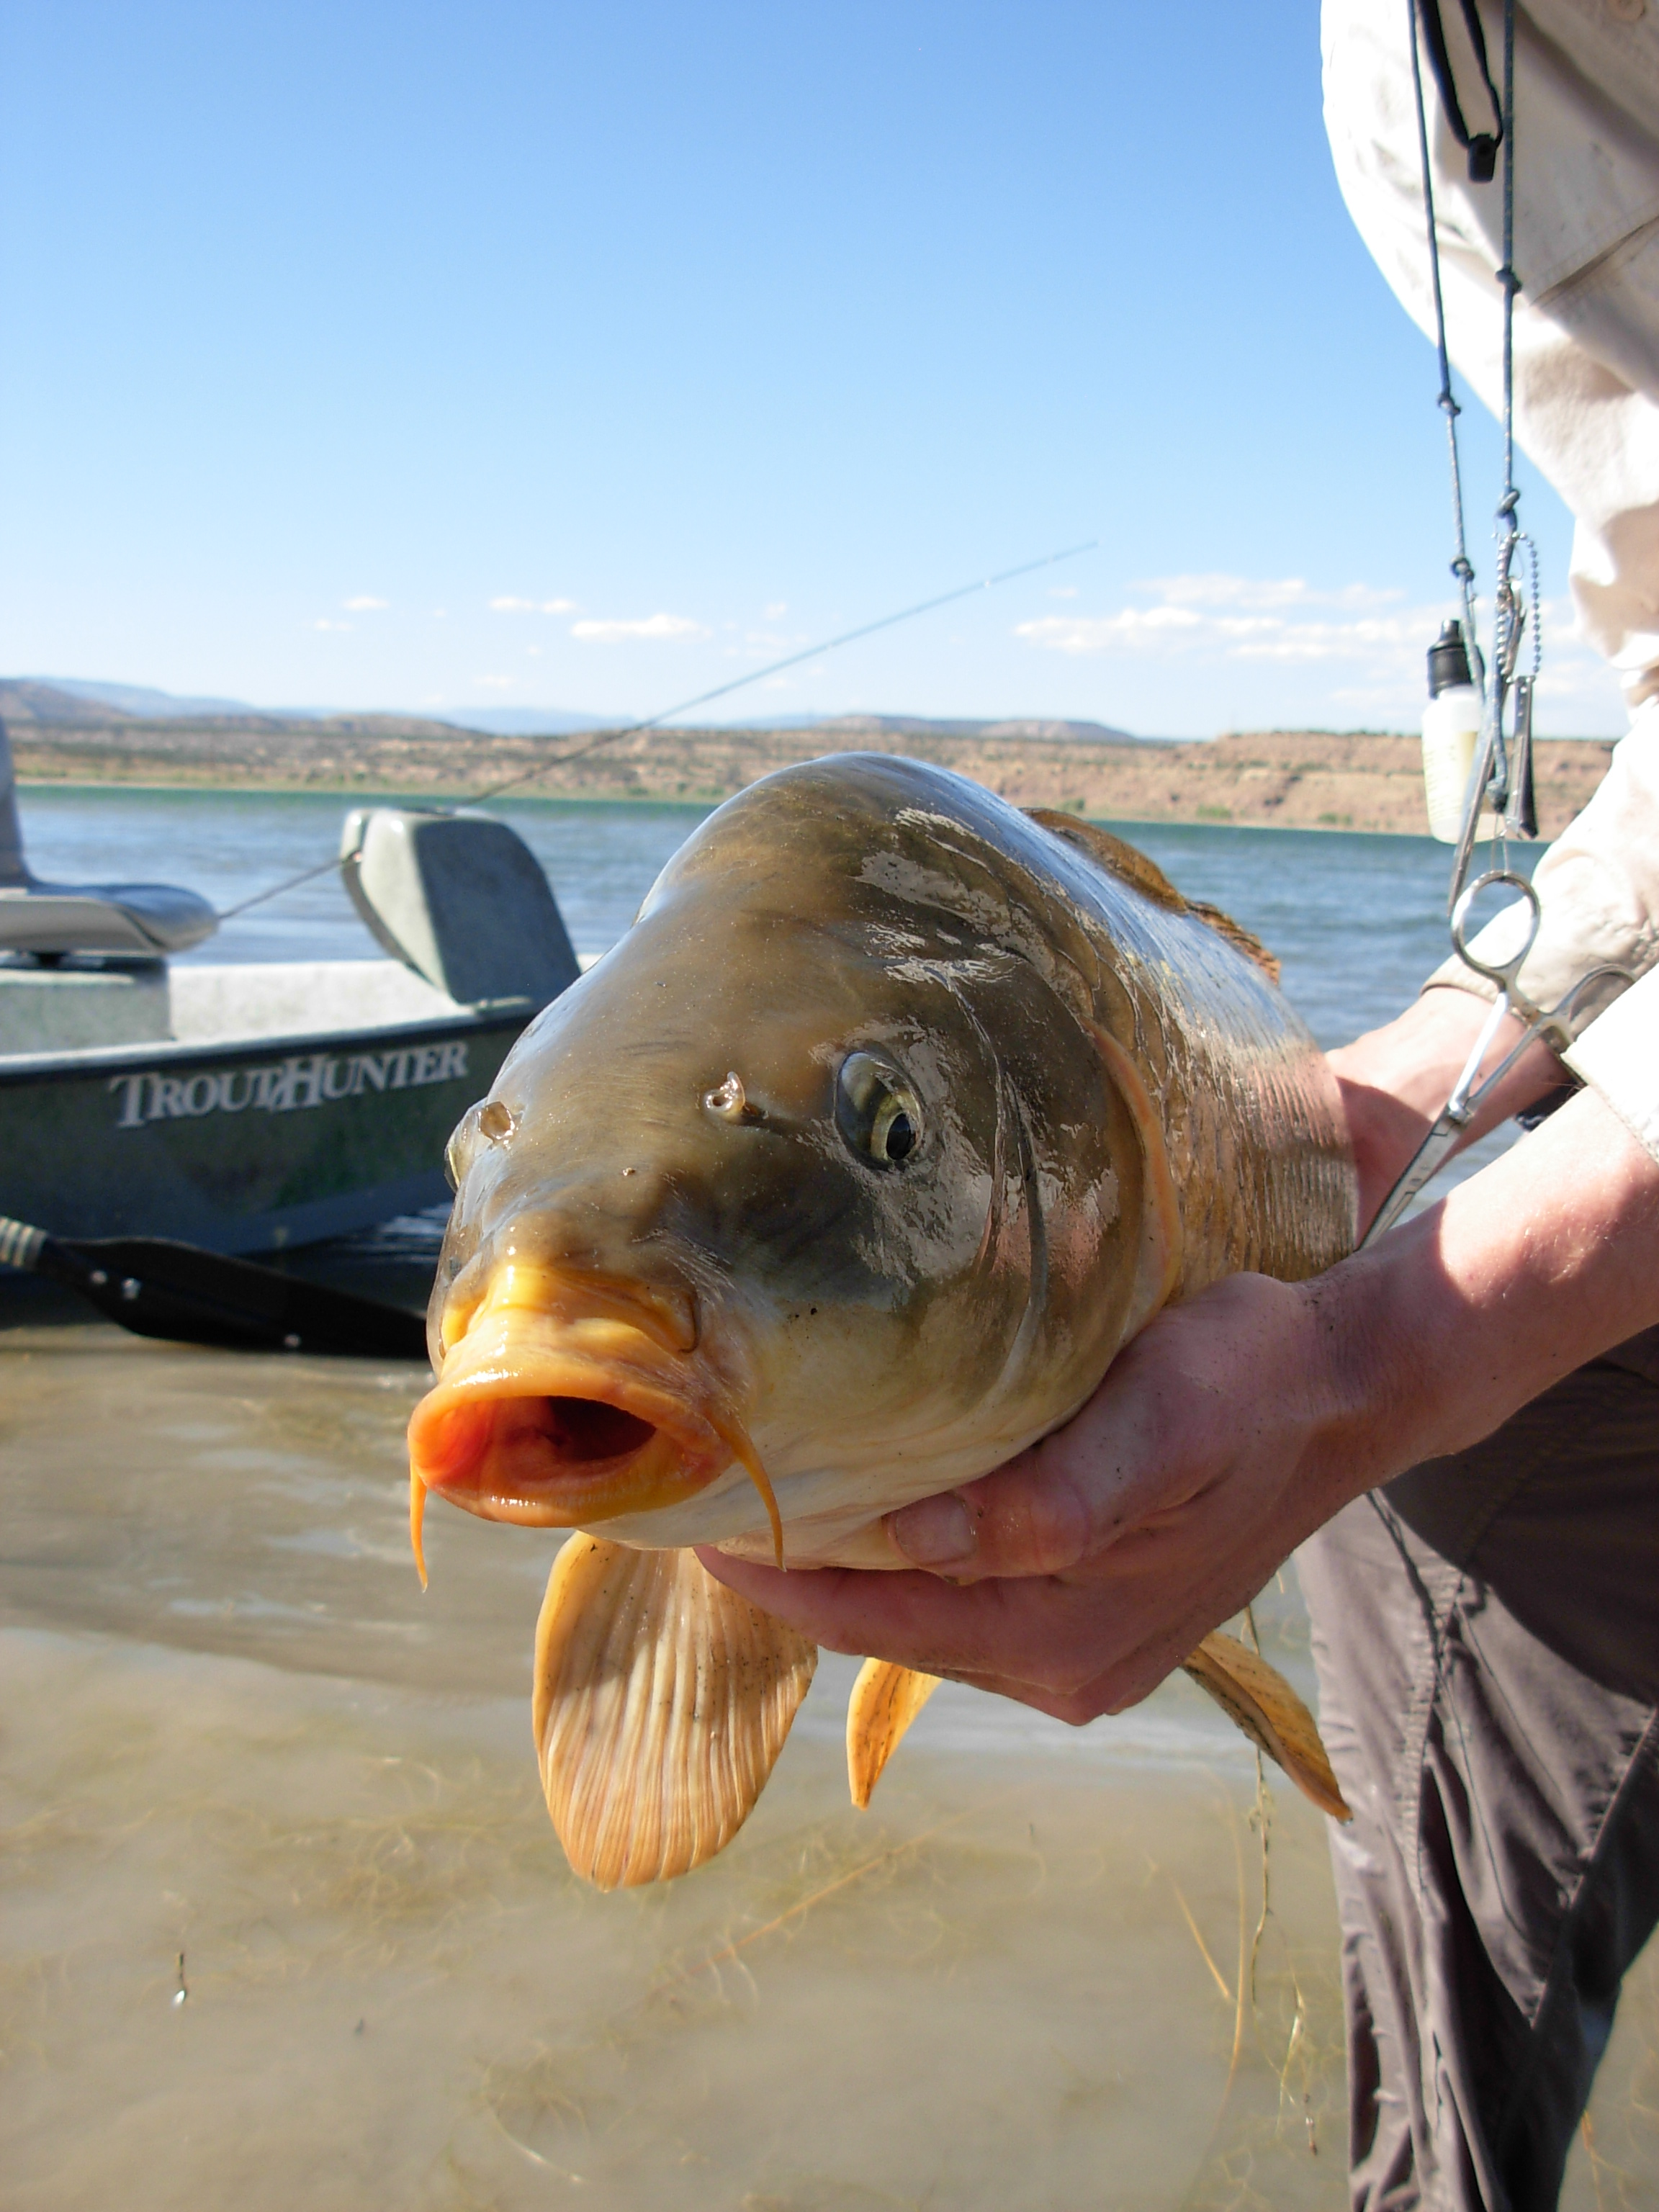 Fly fishing for Carp is rapidly gaining popularity.  Carp are found in nearly every state and